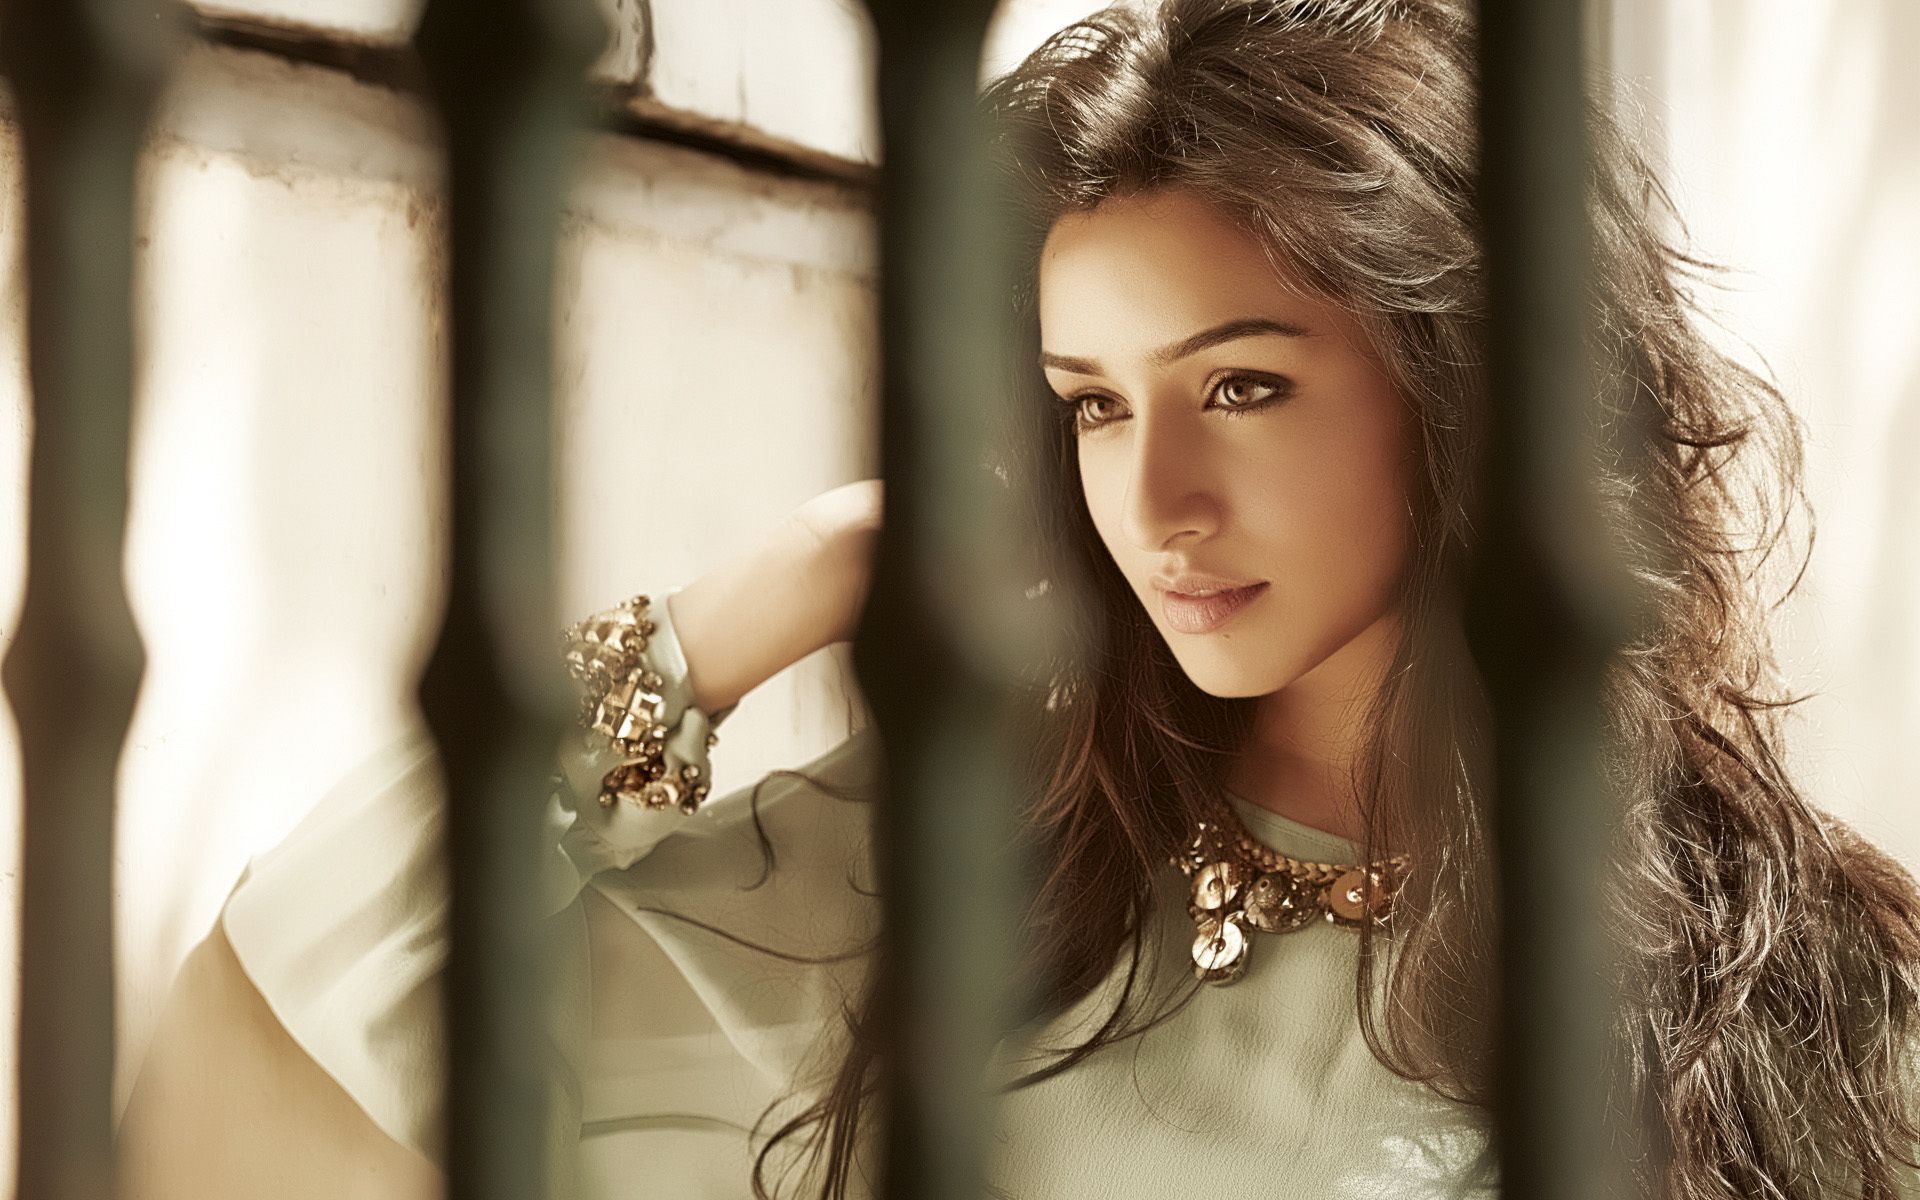 shraddha kapoor full hd wallpaper and background image | 1920x1200